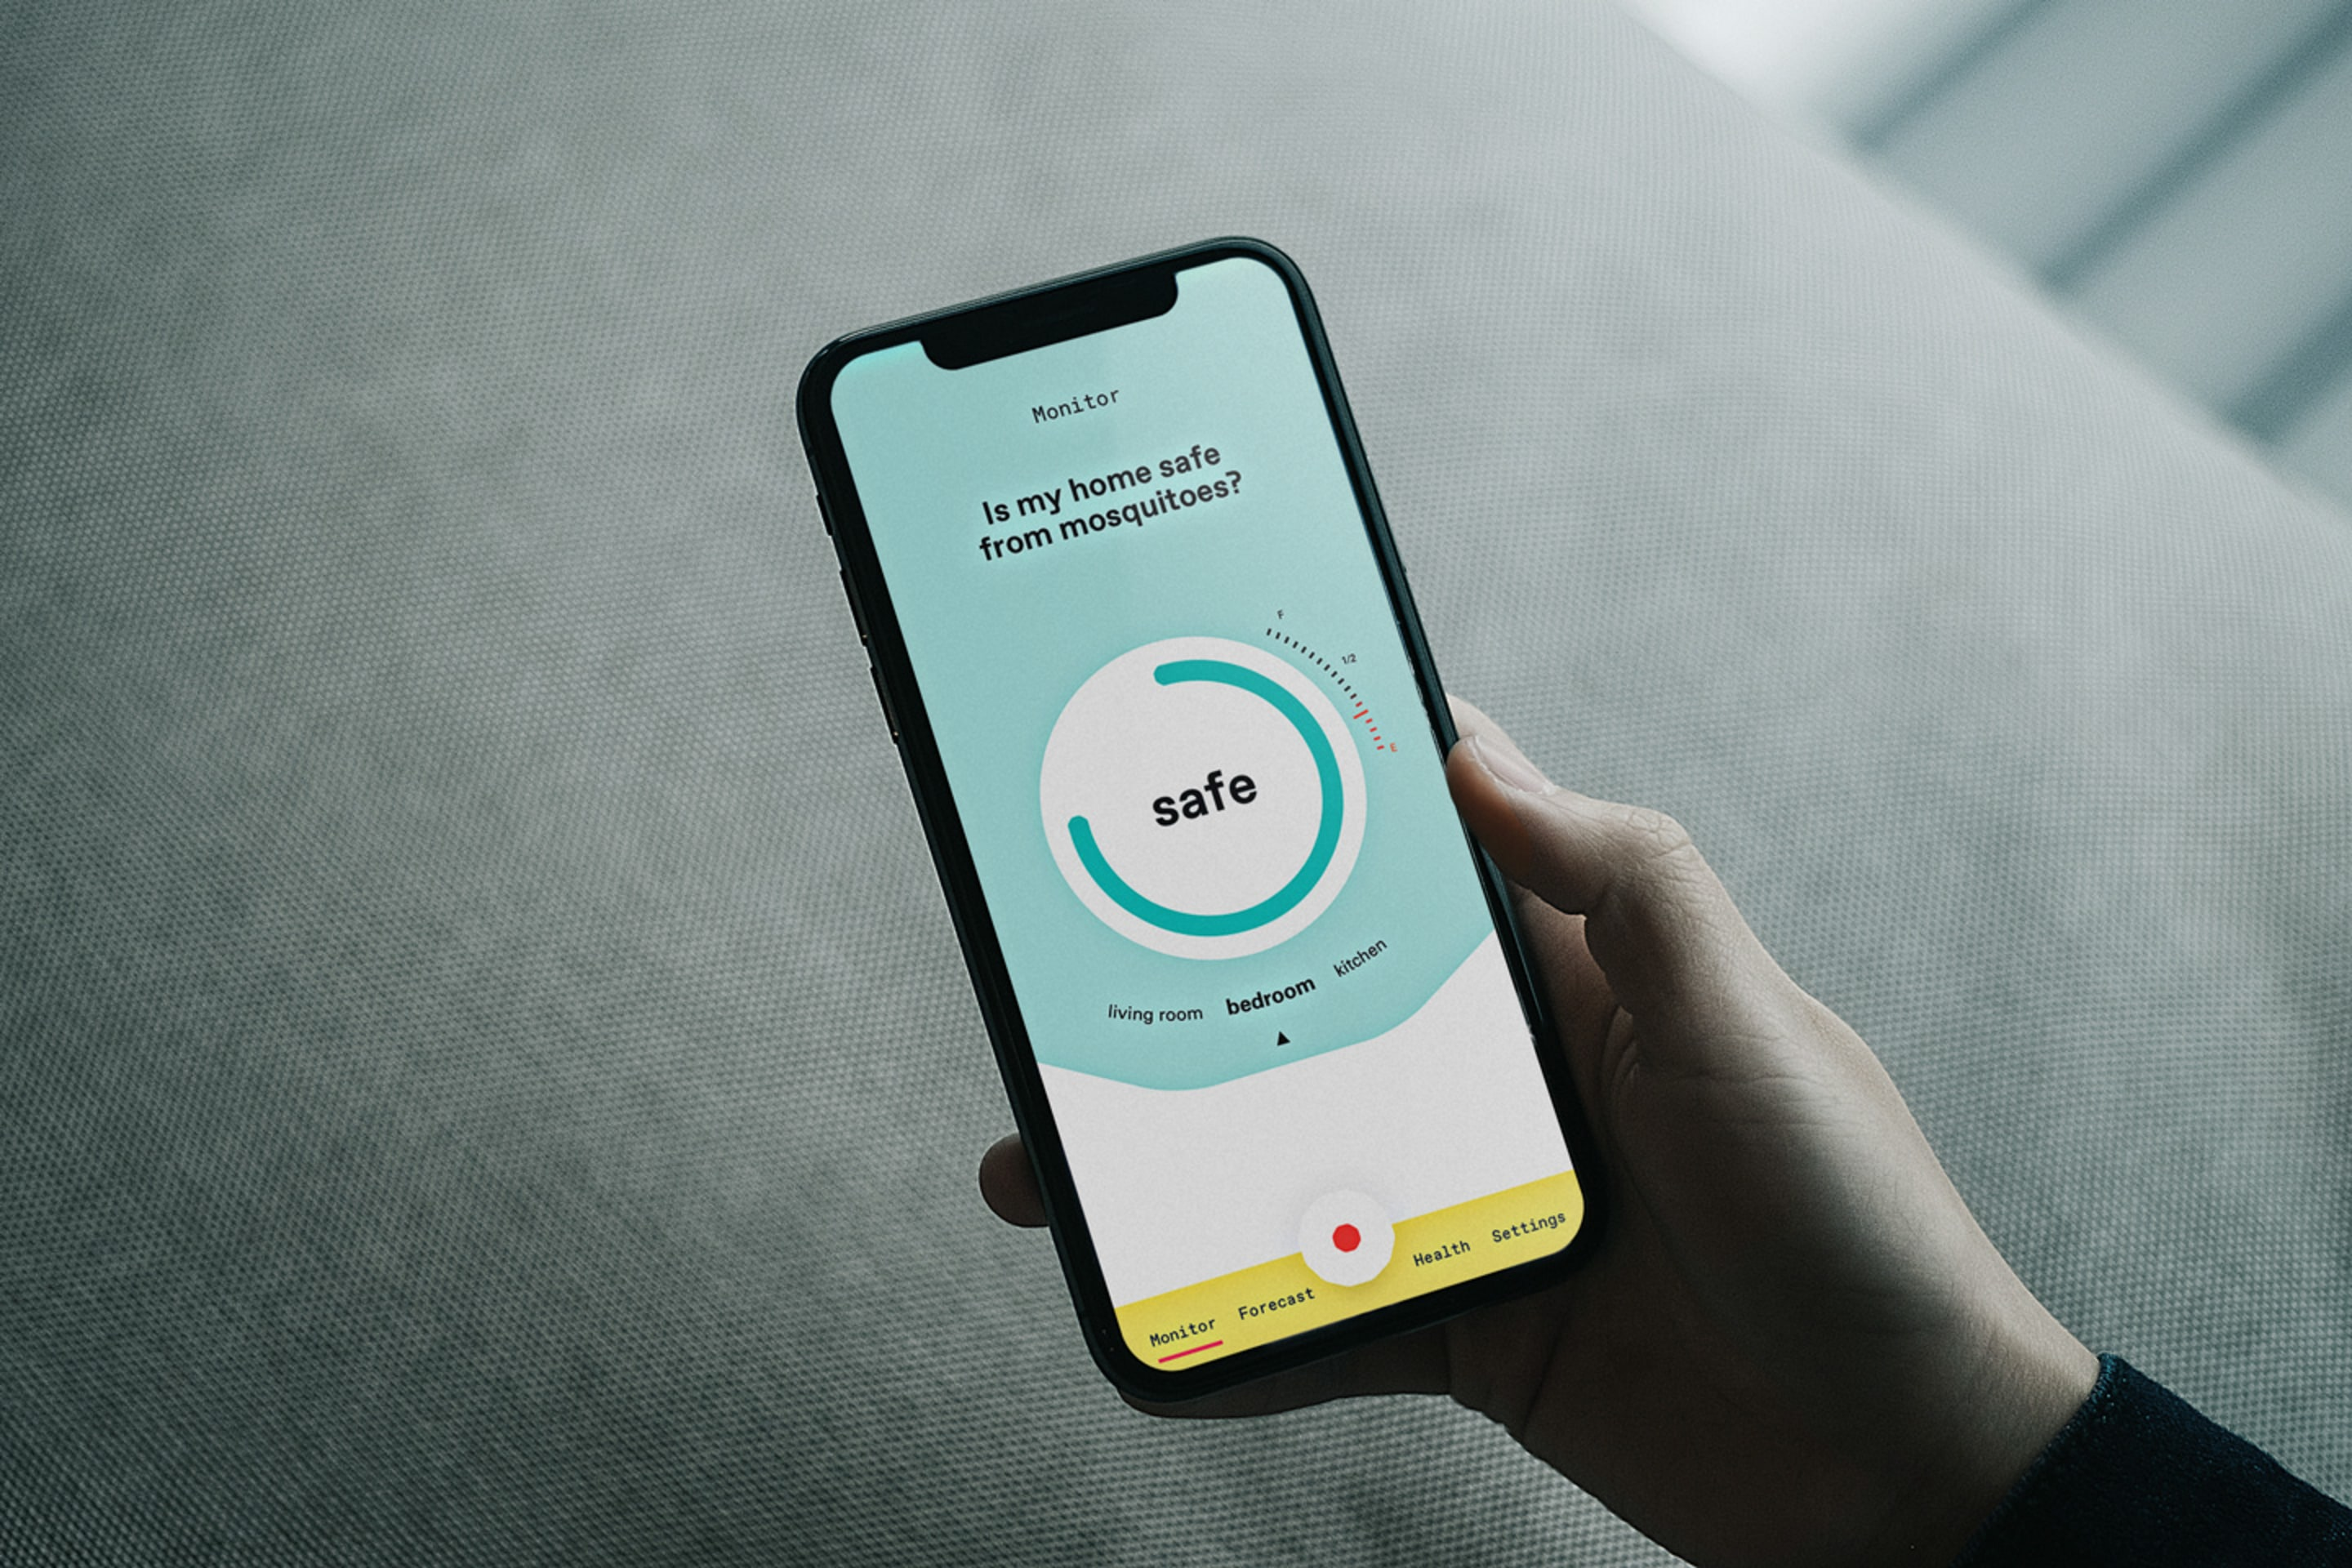 Person holding an iPhone X with an App prototype